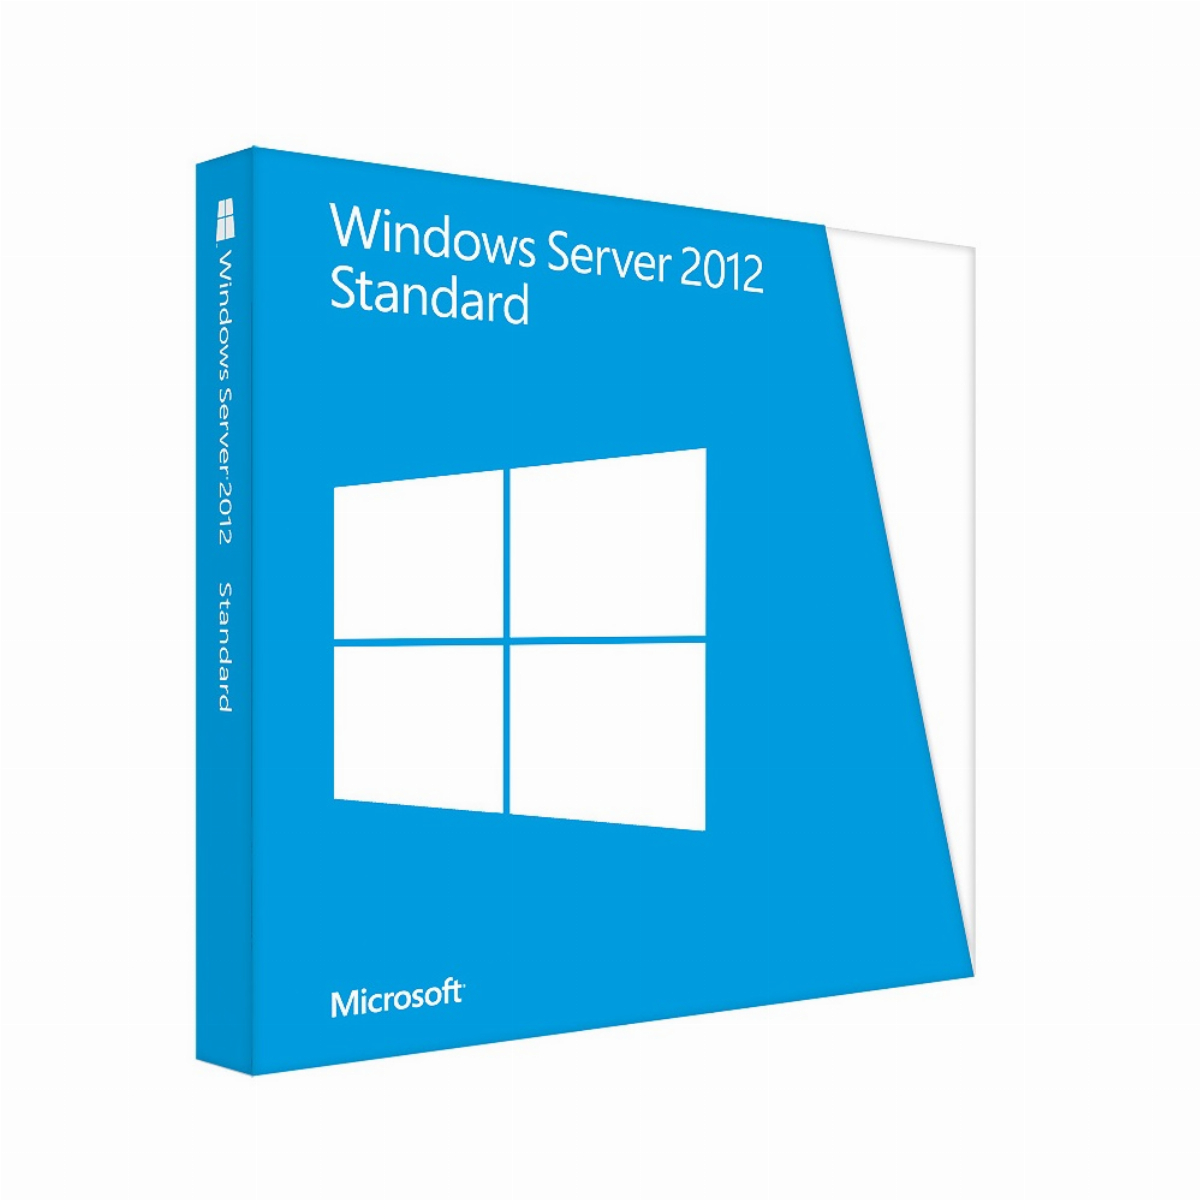 Windows Server CAL 2012 User English 1pk DSP OEI 1 Clt Device CAL